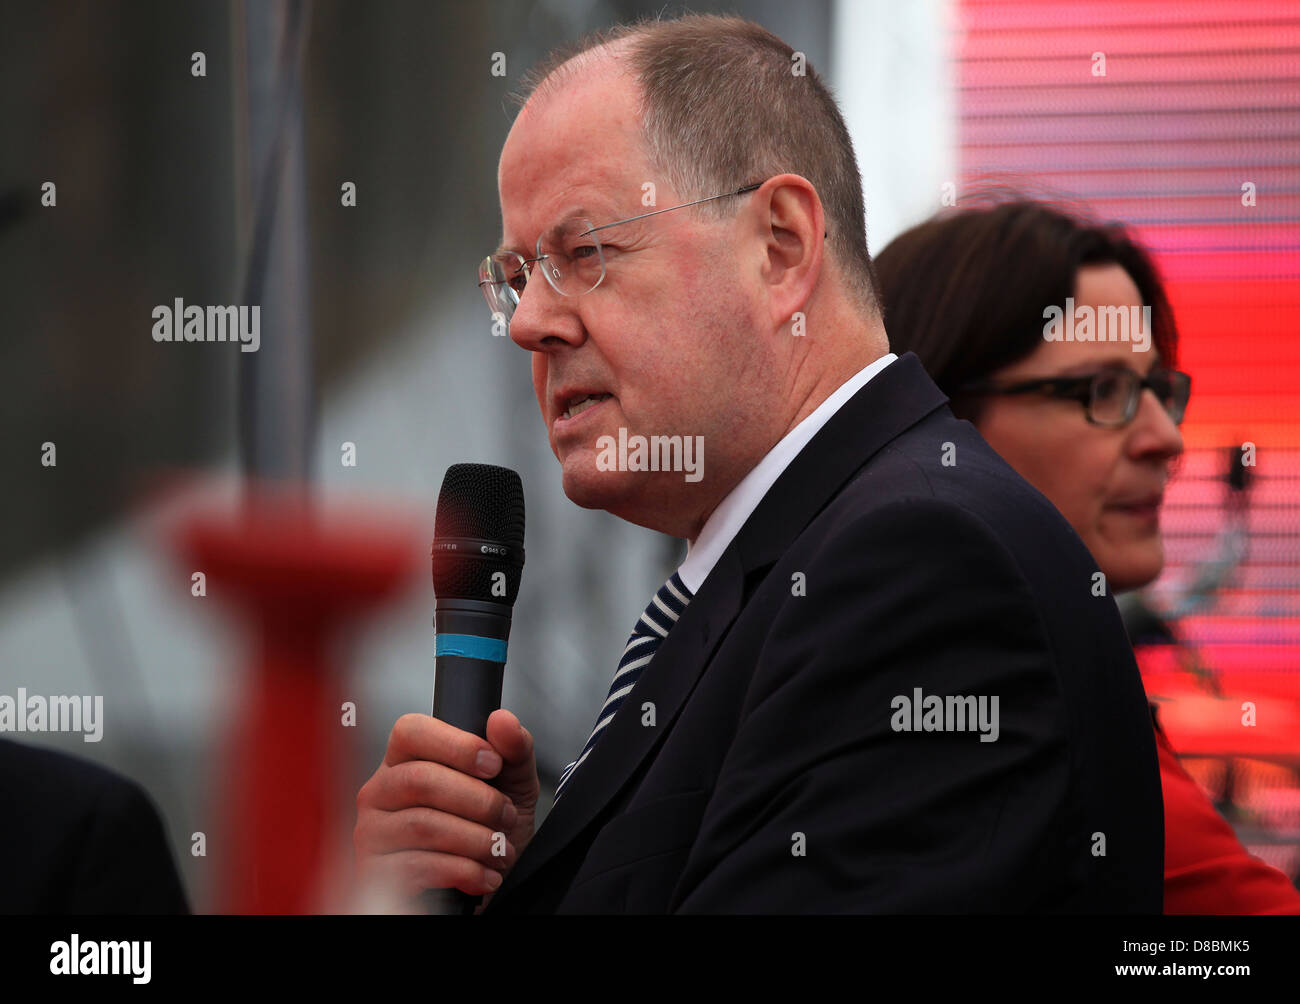 Peer Steinbrück (SPD) speaking at the 150th anniversary of the Social Democratic Party of Germany in Leipzig, - Stock Image